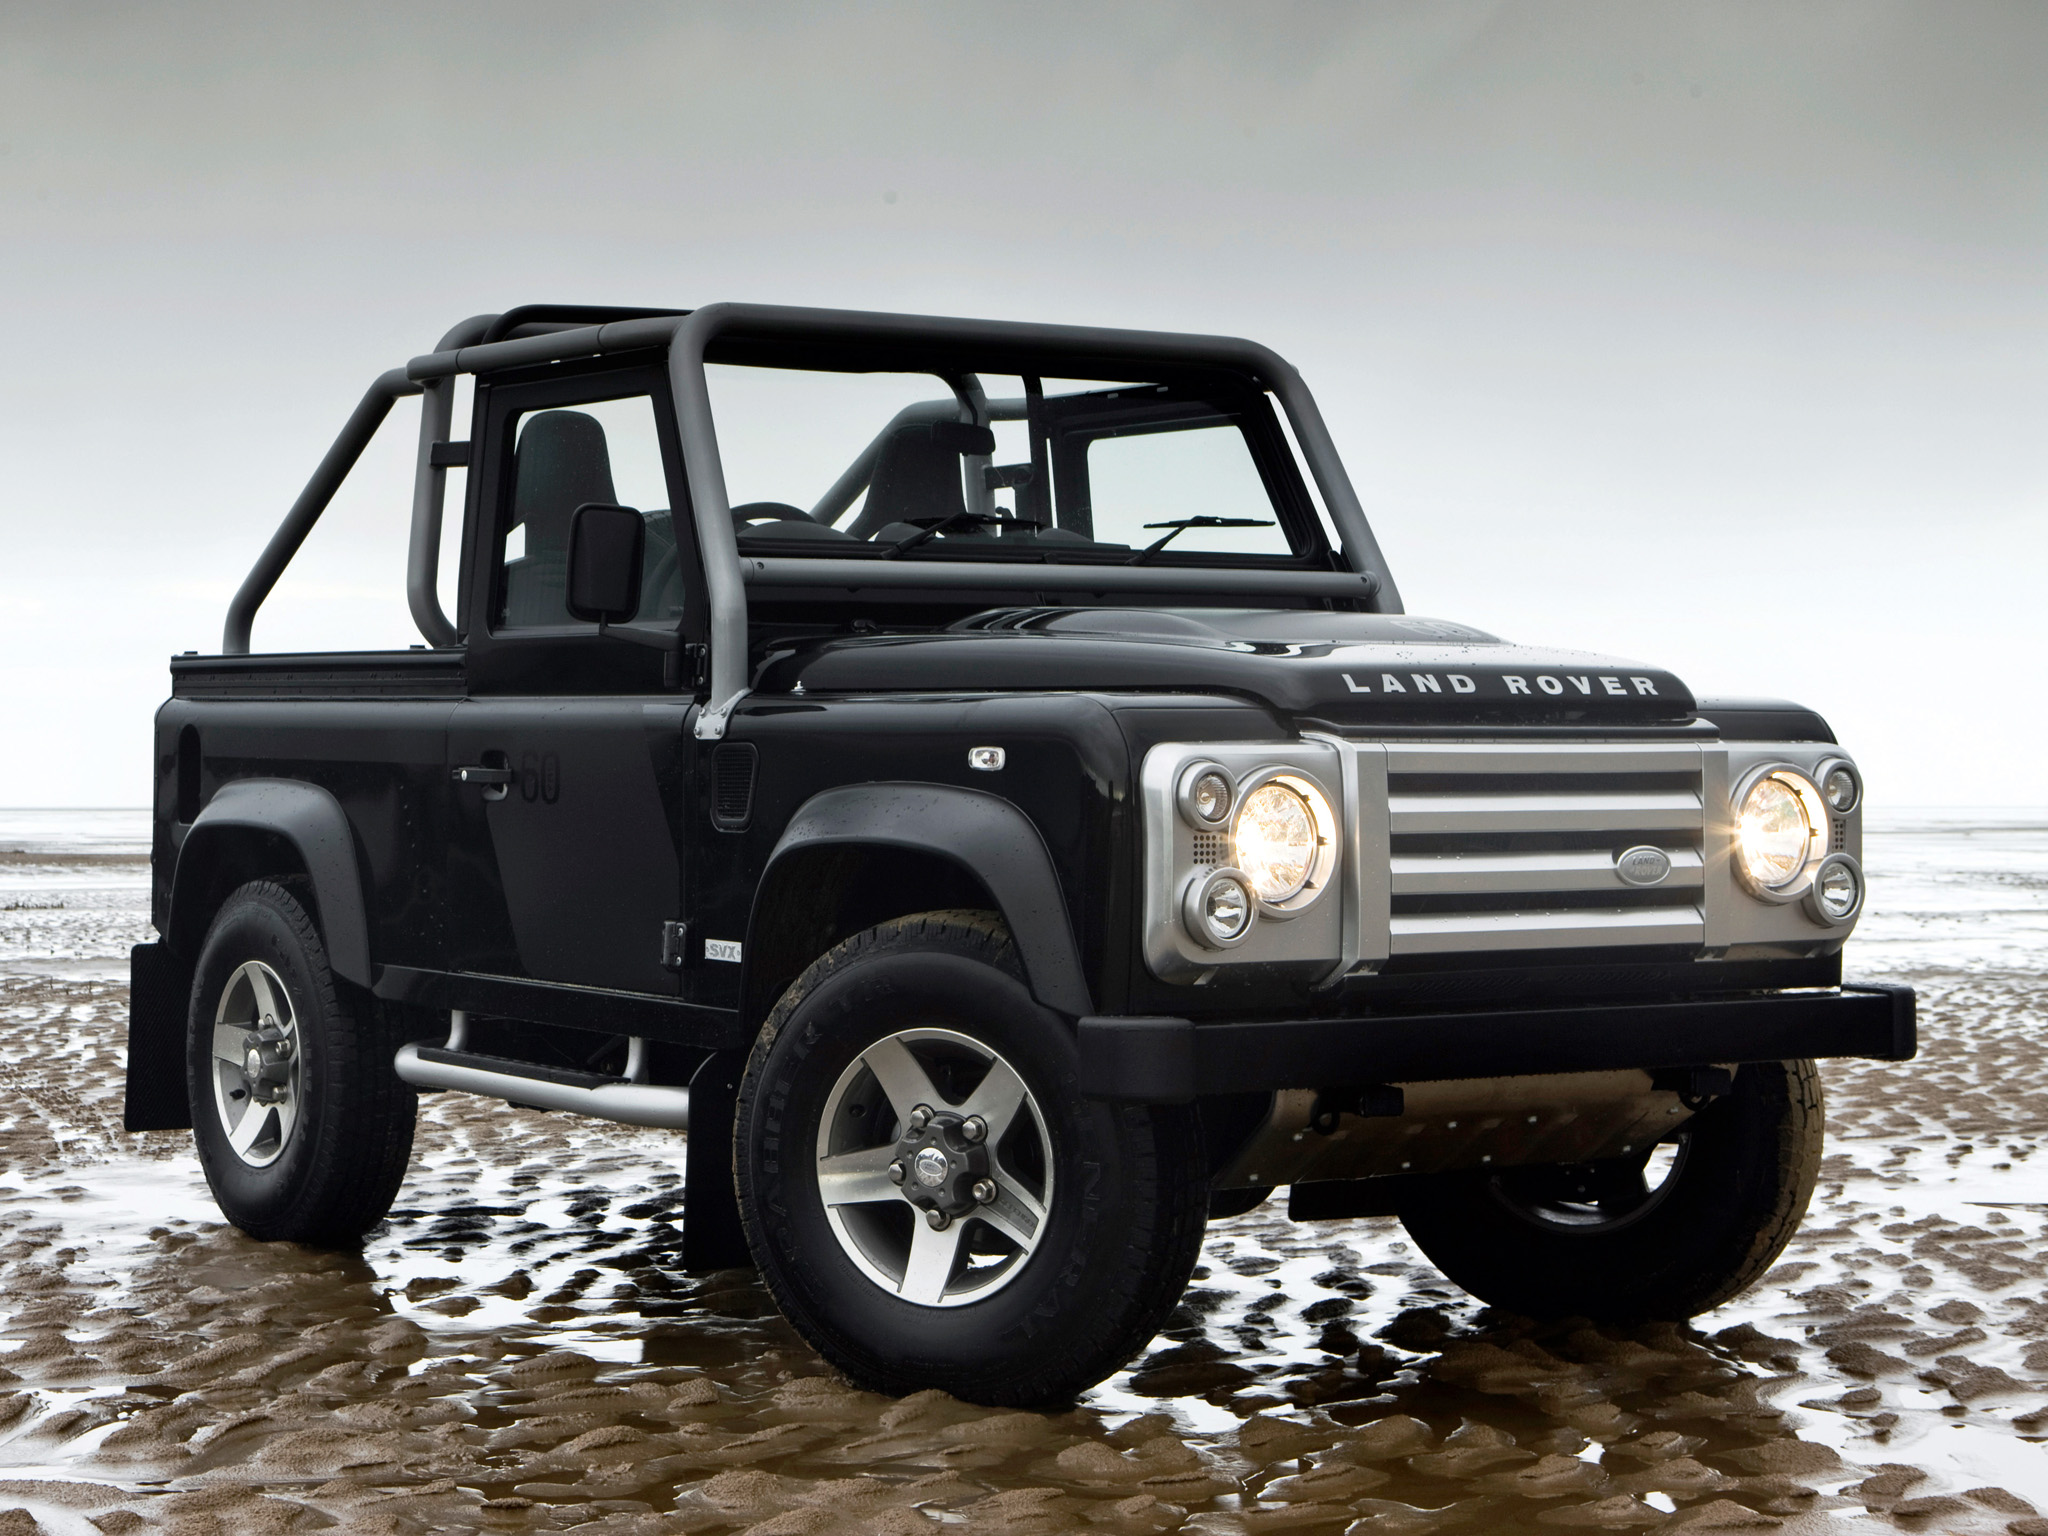 Land Rover design boss wary over copycats